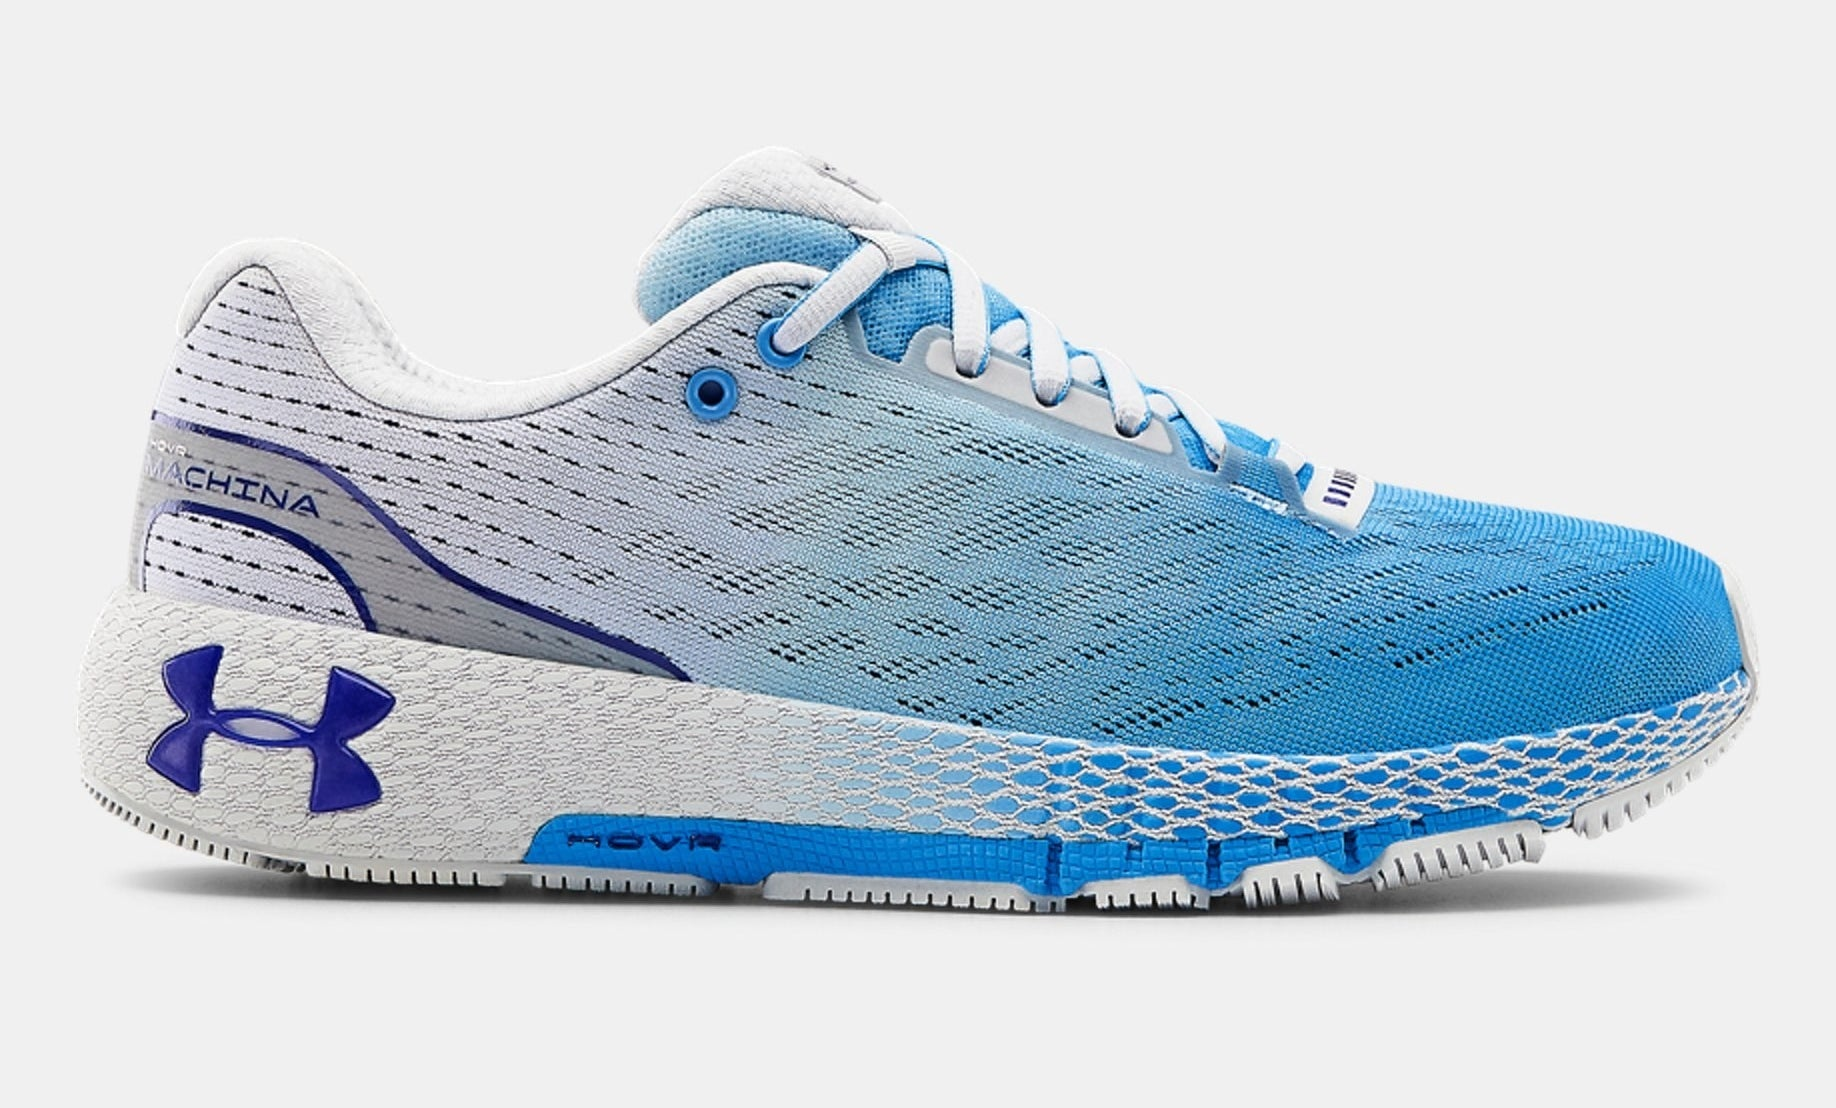 The blue and white running shoes